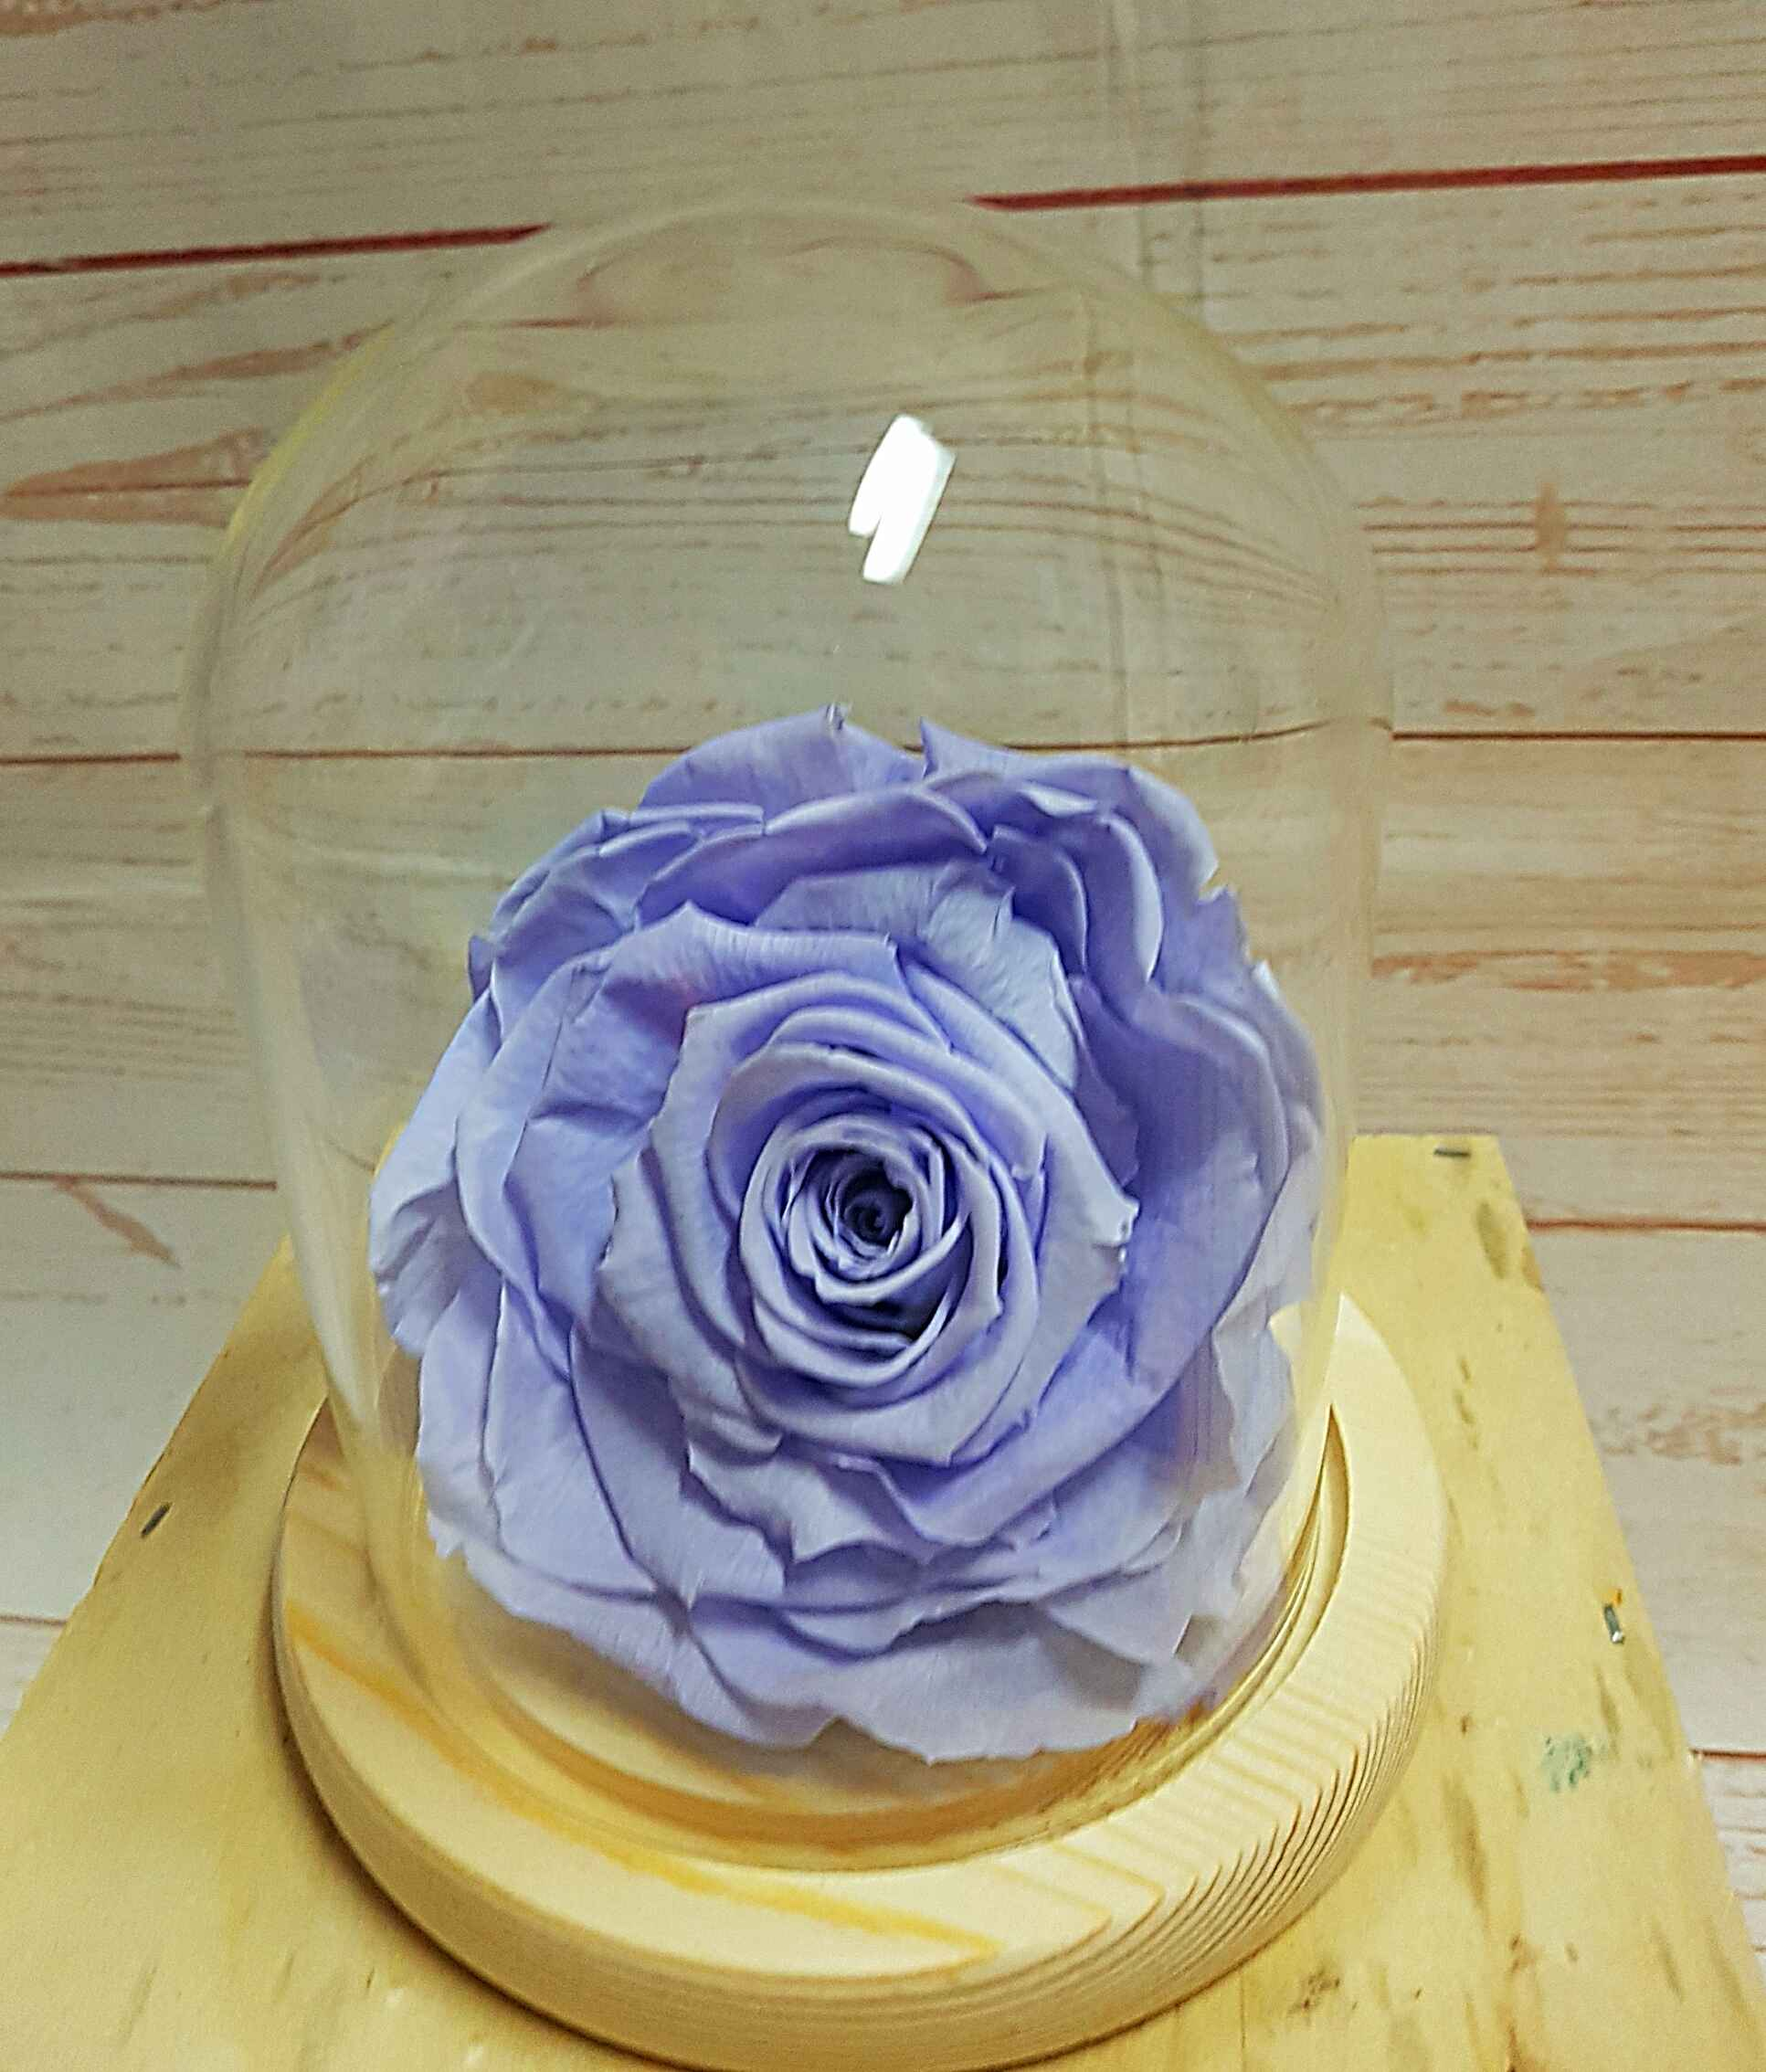 A beautiful, everlasting rose in a cool lavender colour the Kiara preserved rose, is presented in  a glass cloche with a wooden base.The lifespan of the preserved flower is at least 50 times greater than that of a fresh flower.